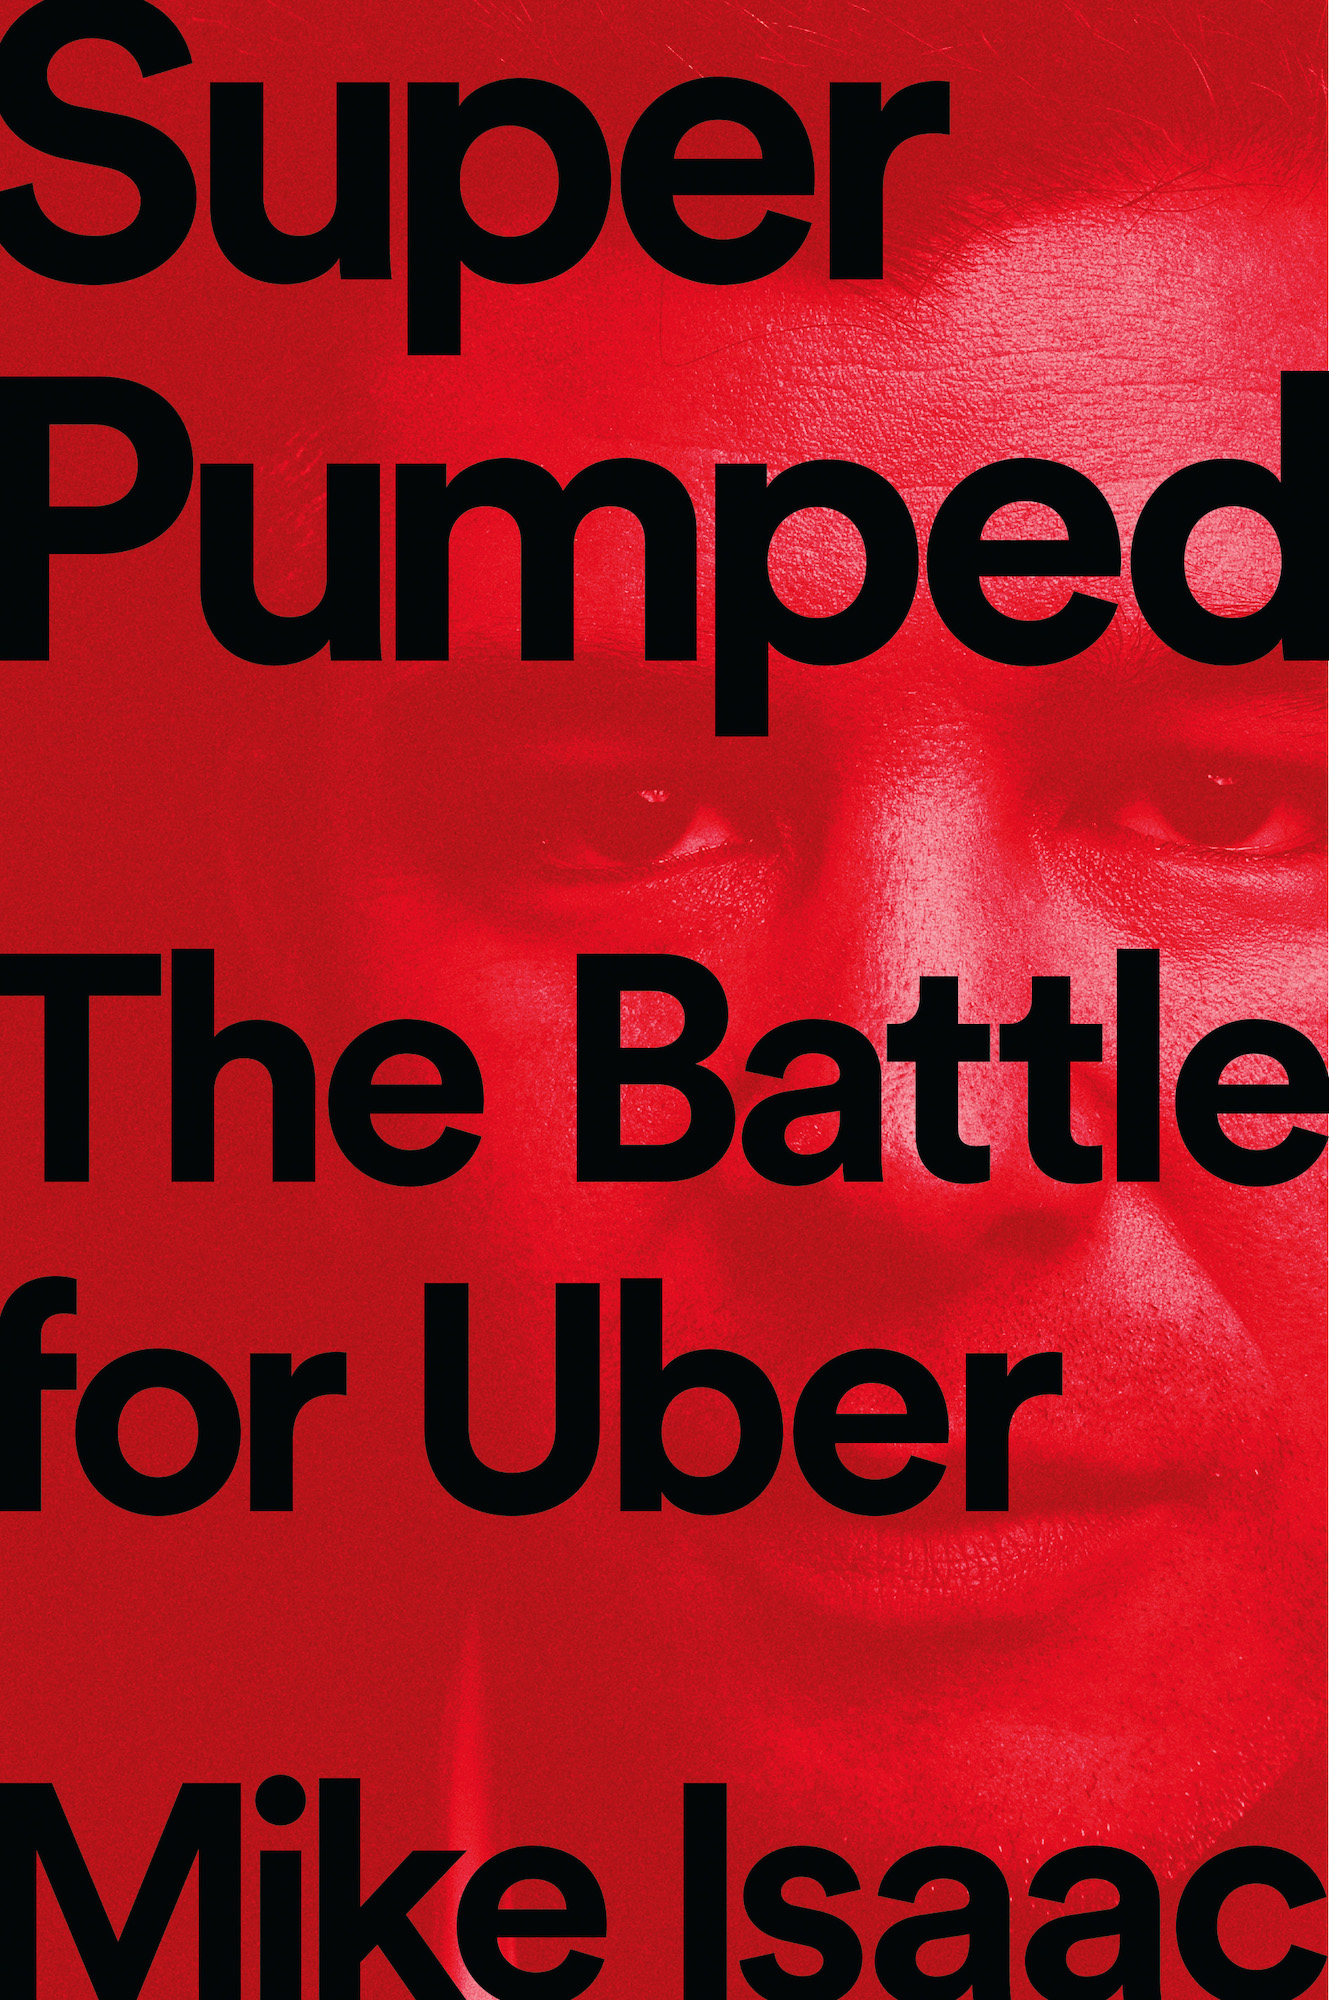 The dramatic rise and fall of Uber, set against the rapid upheaval in Silicon Valley during the mobile era. -